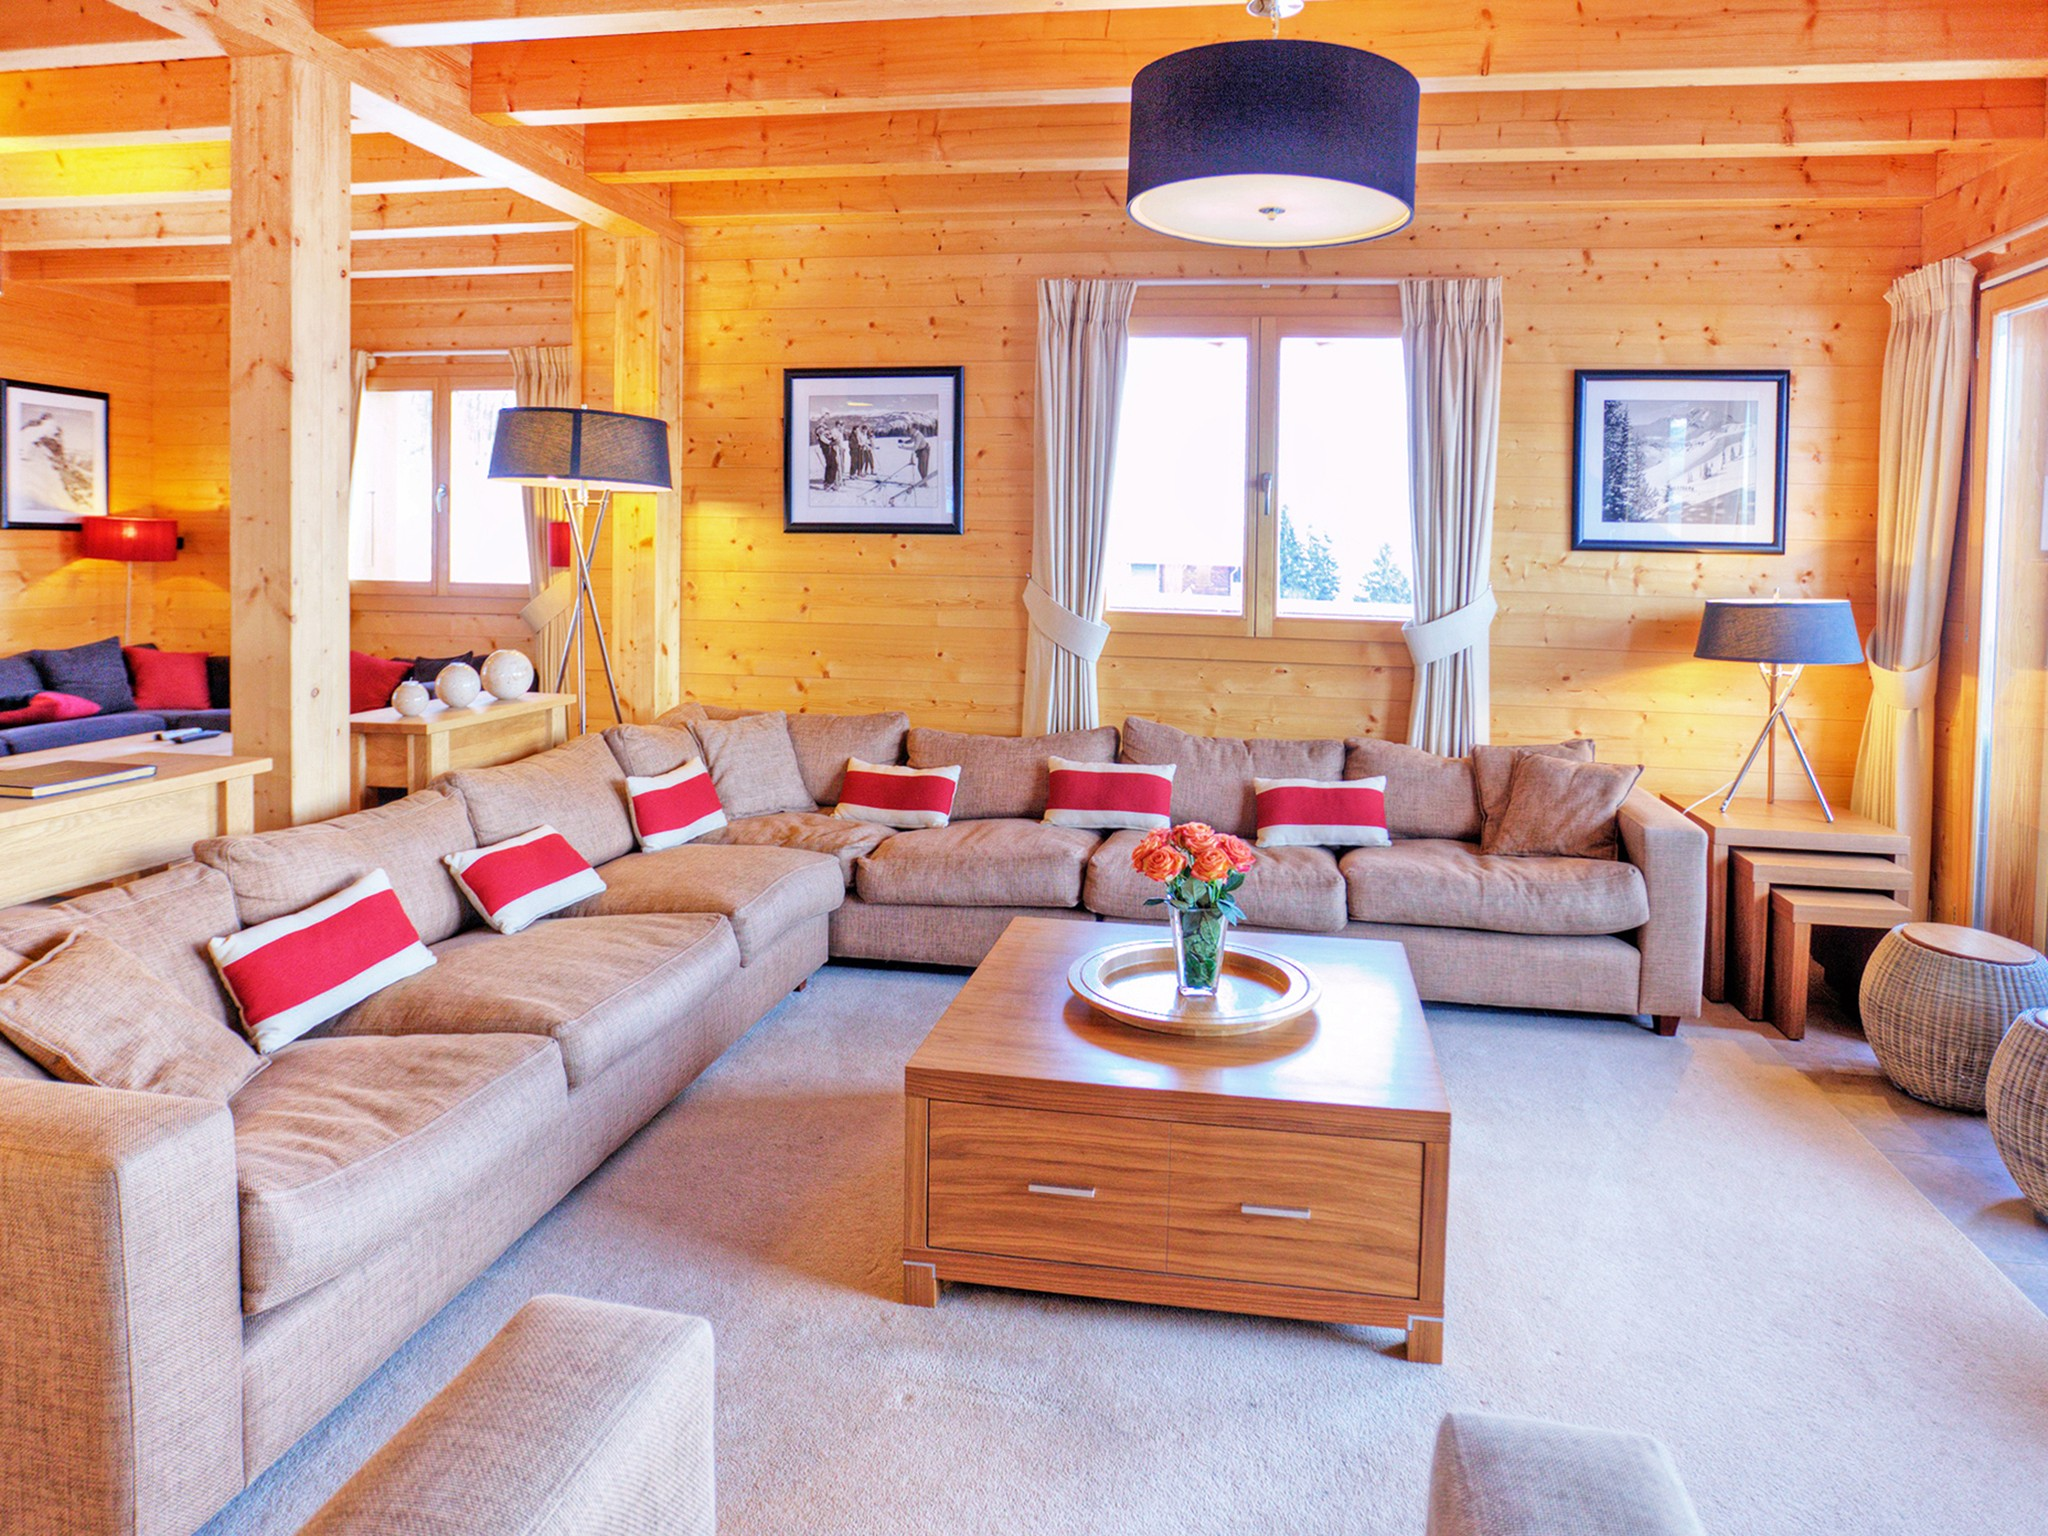 Chalet Teychenne - living room